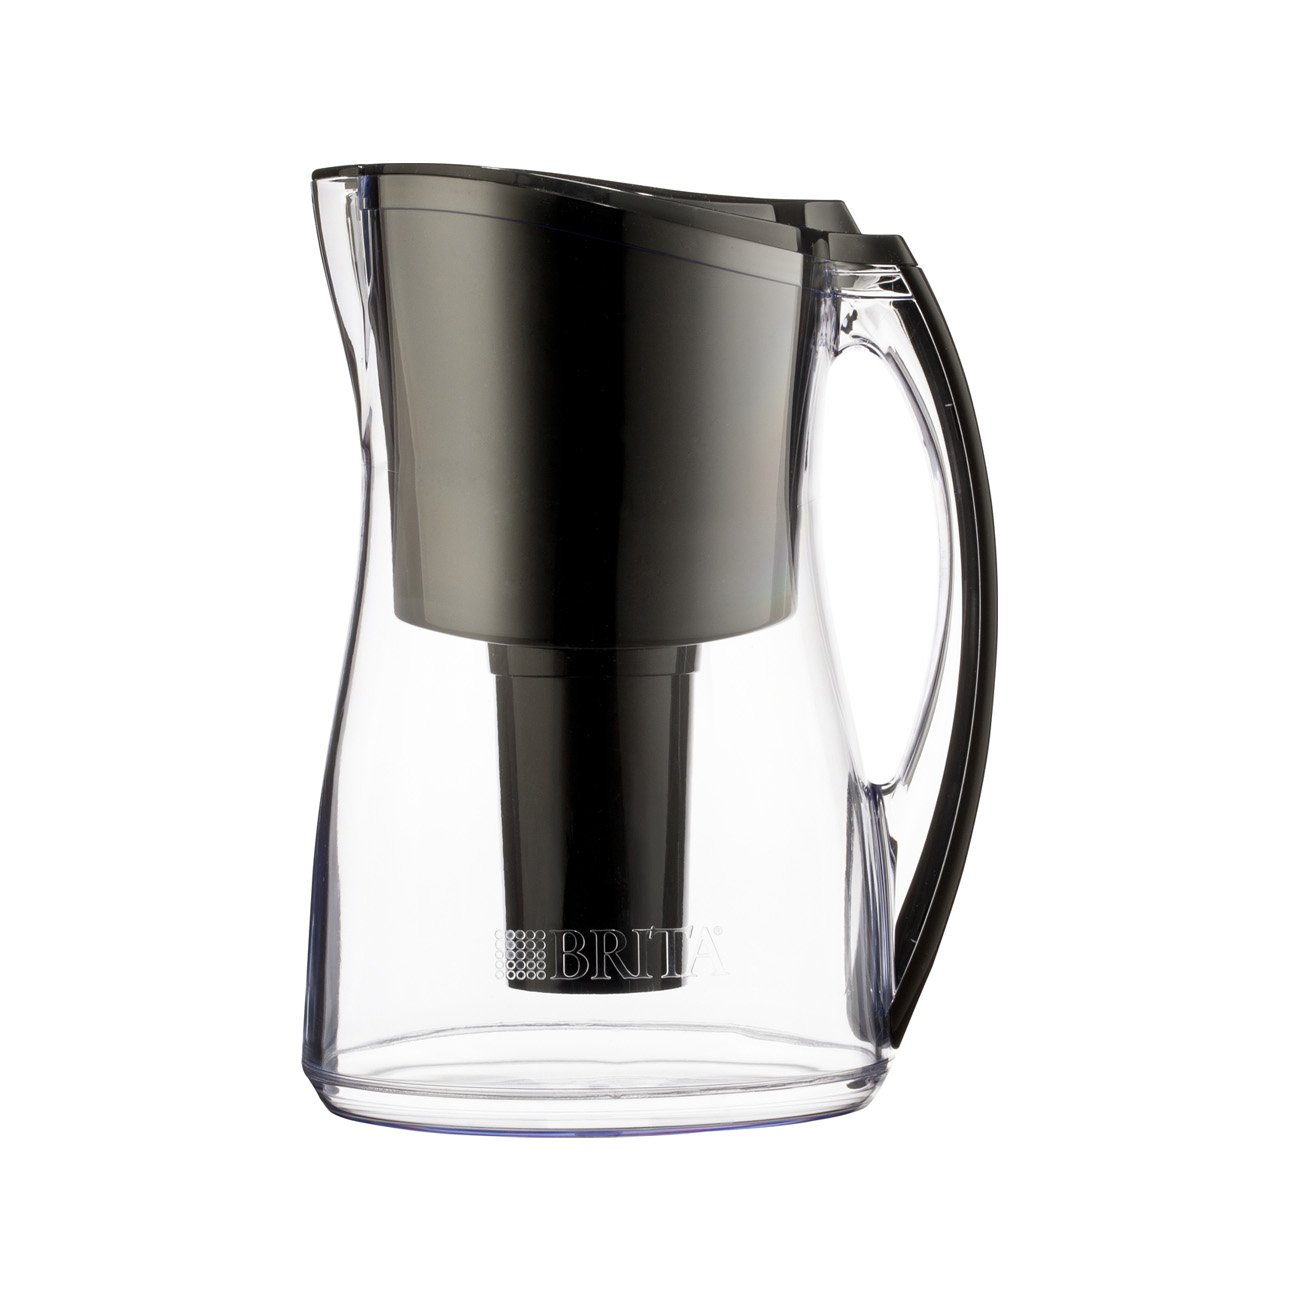 brita marina water filter pitcher black 8 cup new. Black Bedroom Furniture Sets. Home Design Ideas